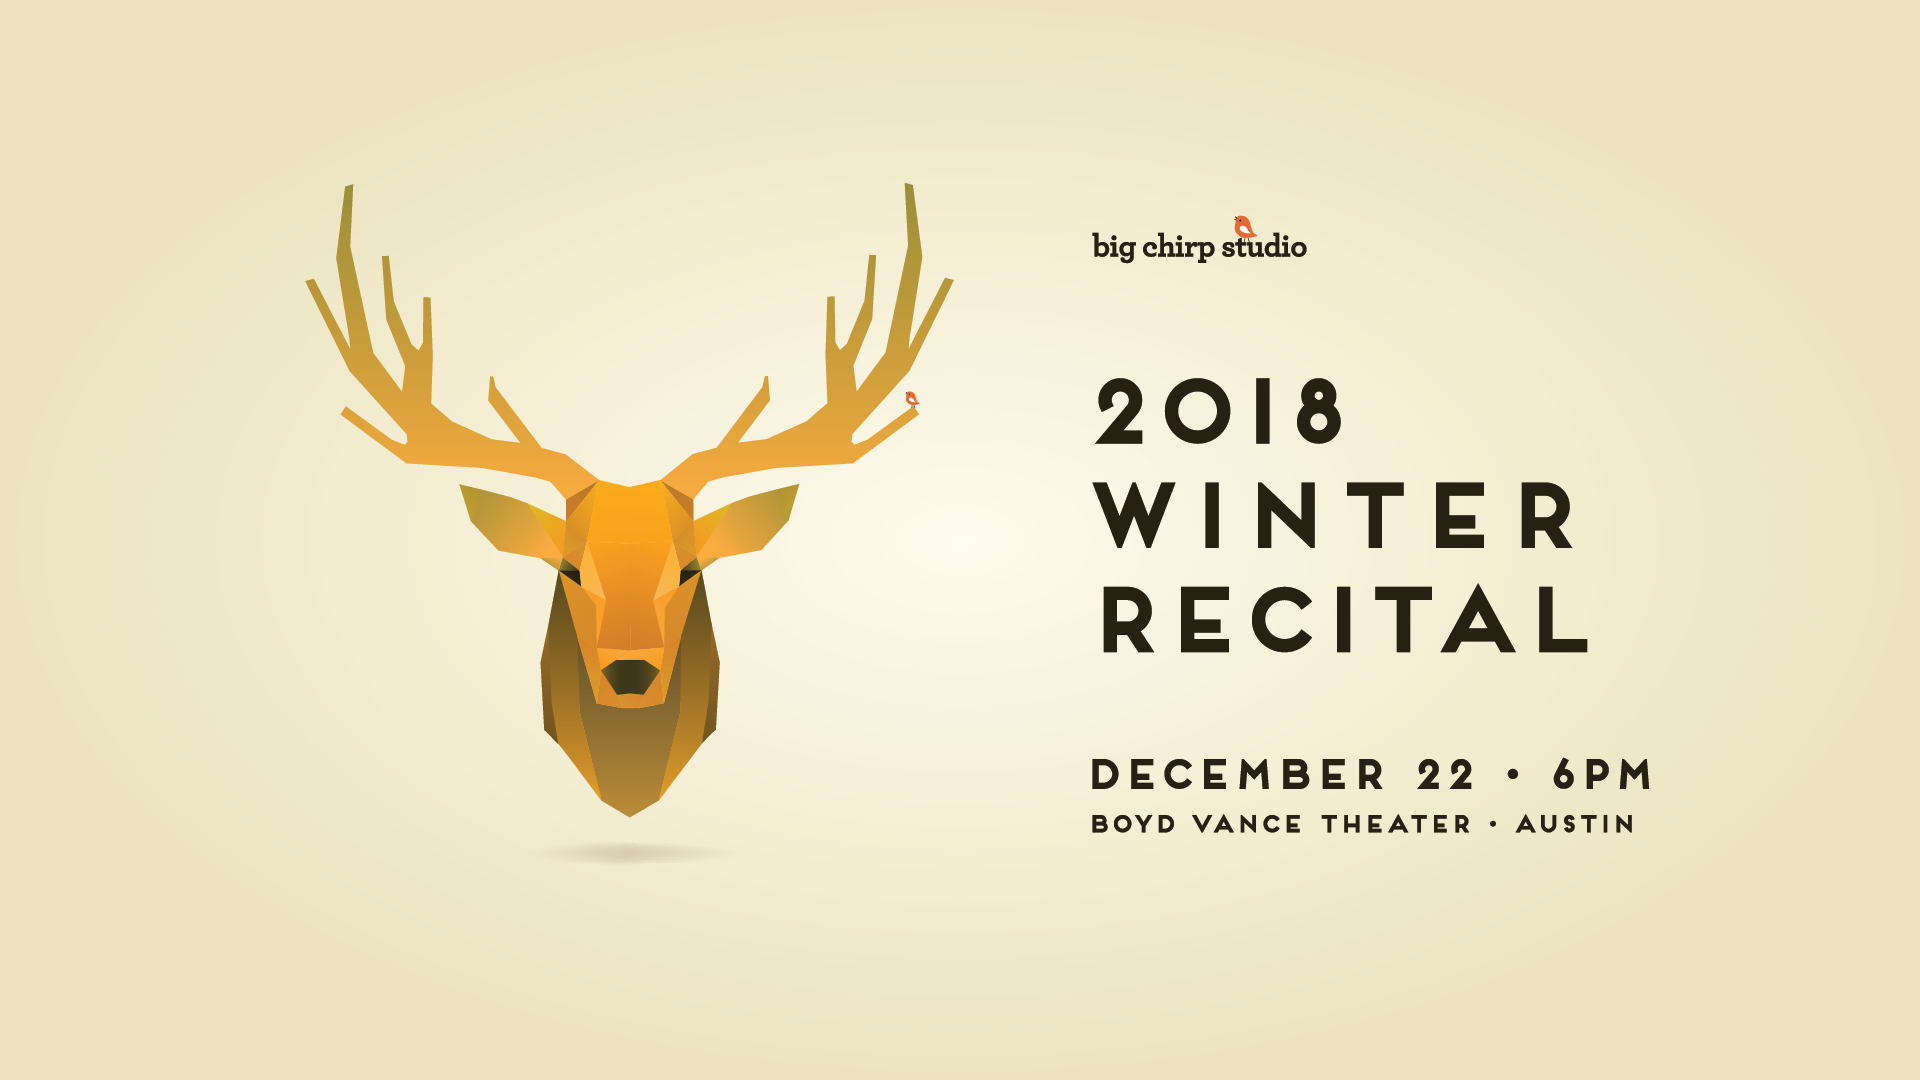 2018 Winter Recital